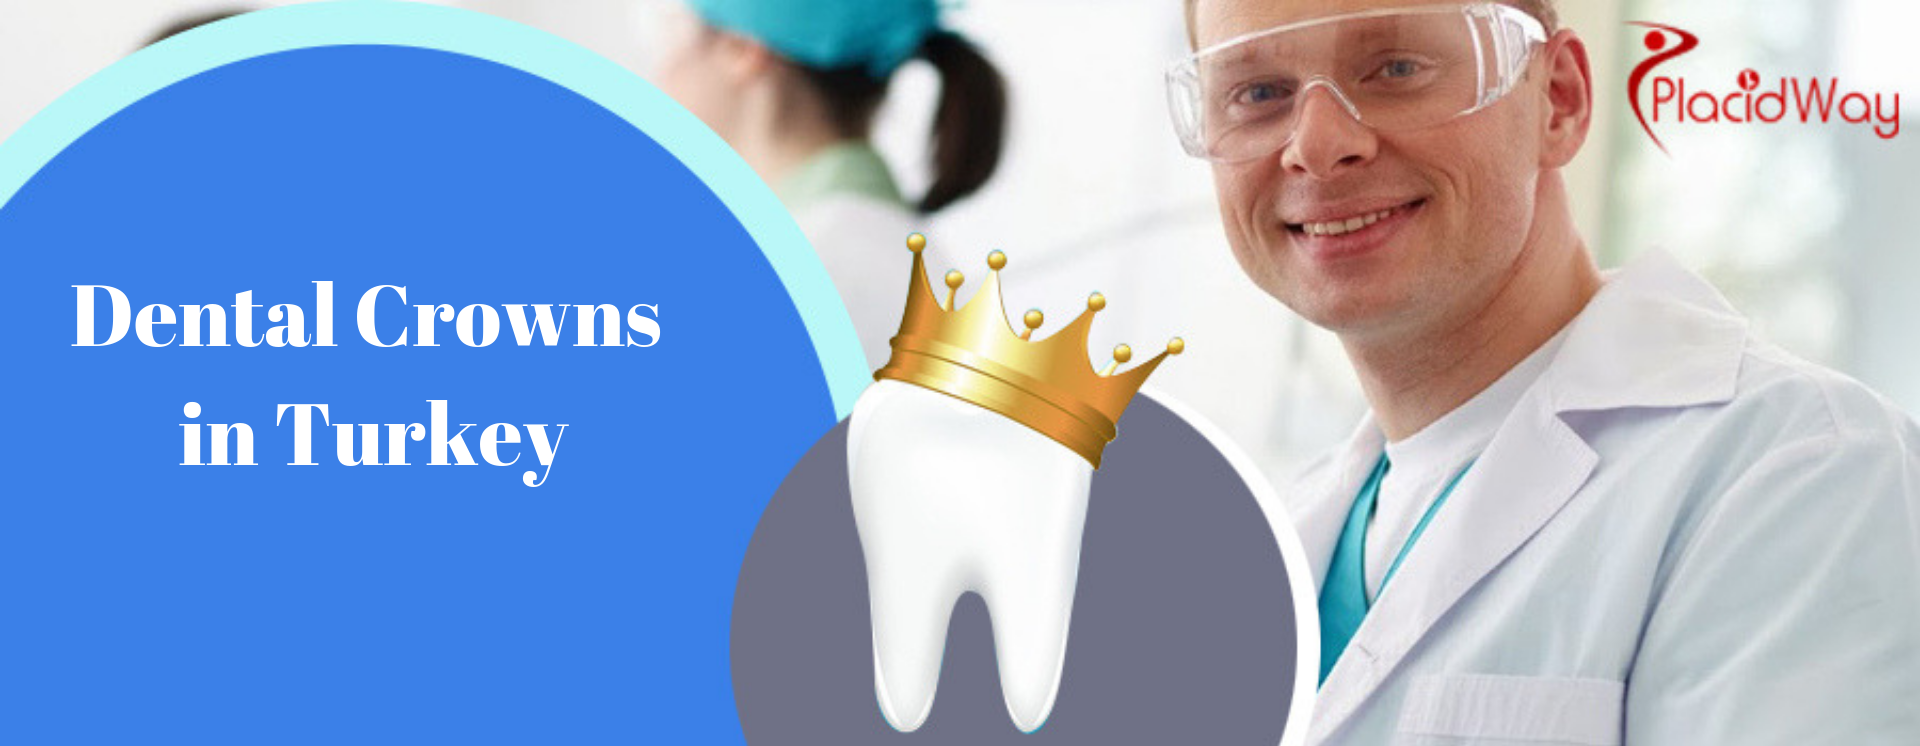 Dental crowns in Turkey